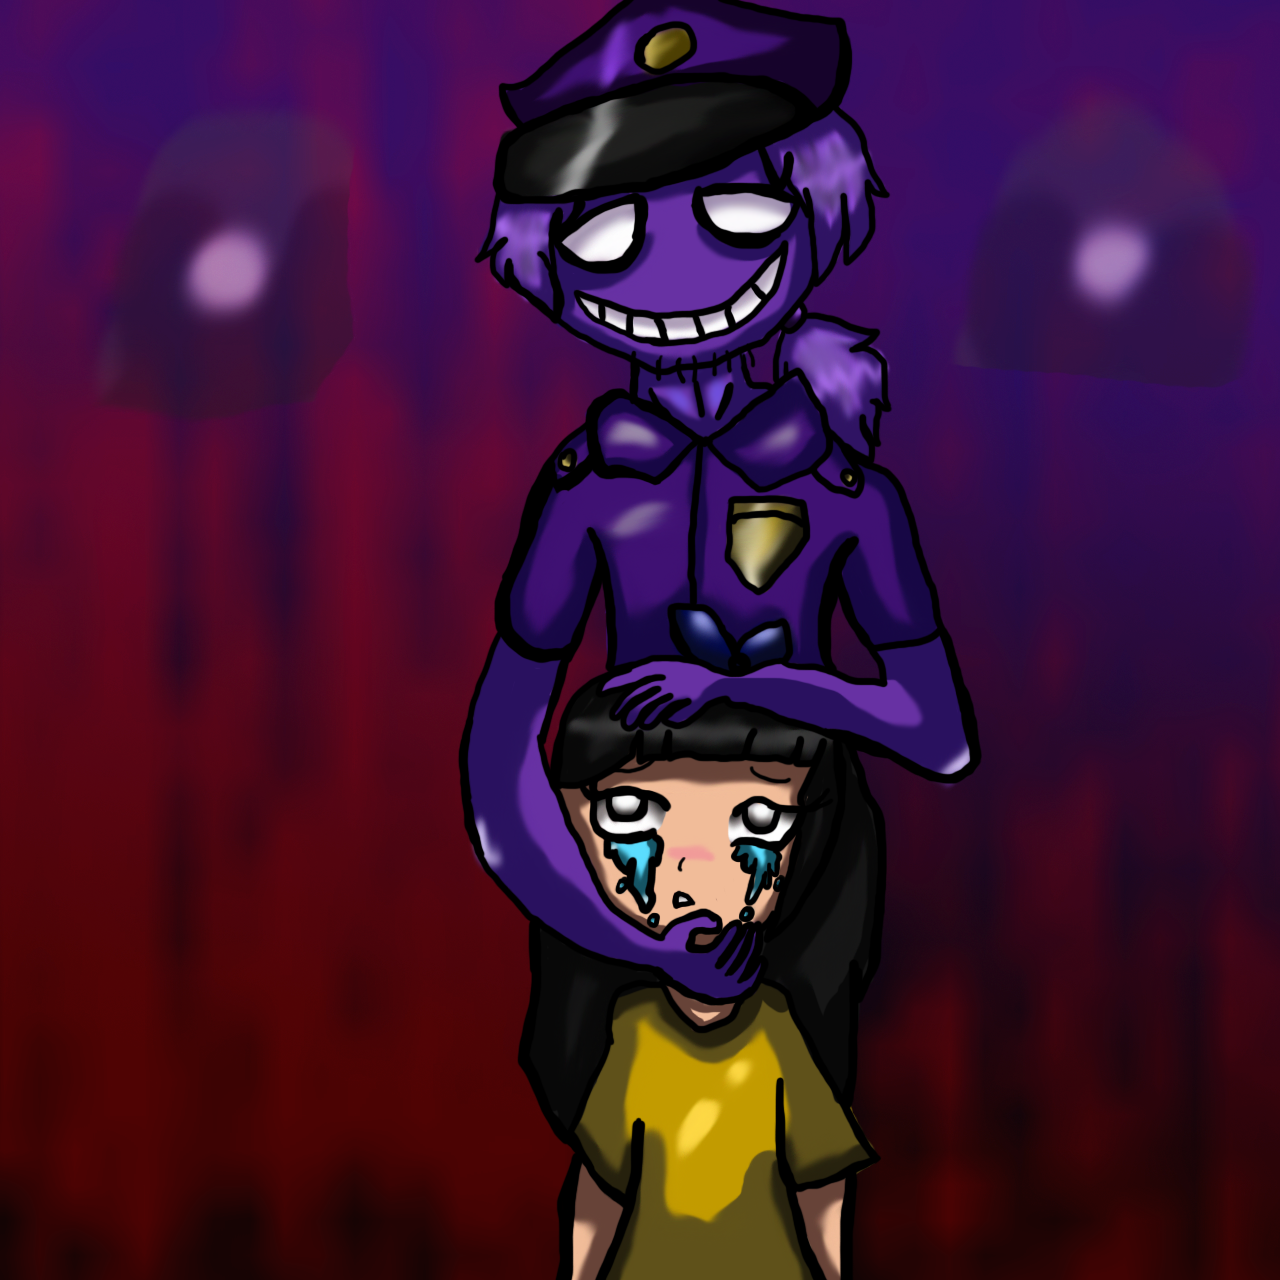 Fnaf are you lost by pokechan13 on deviantart